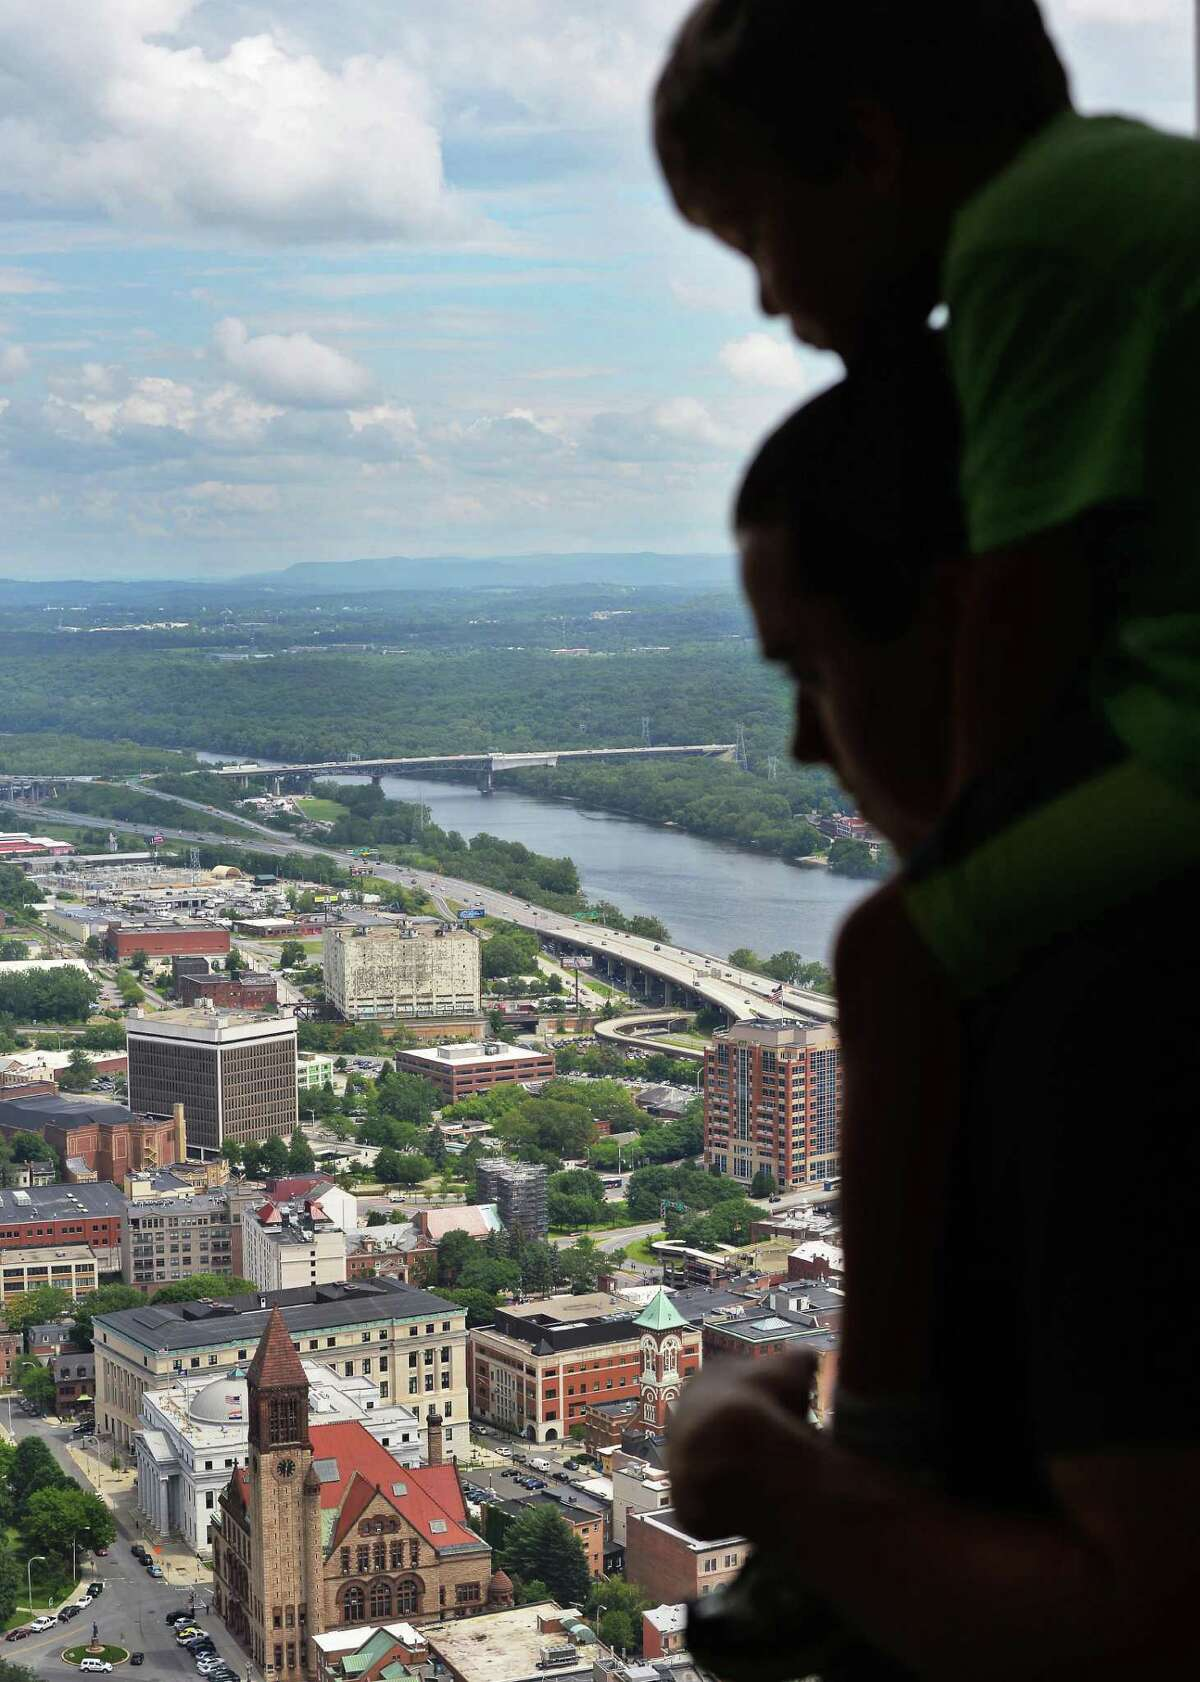 For a birds-eye-view of the city: Visit the observation deck of the Corning Tower in Albany. Where: Empire State Plaza, Albany.